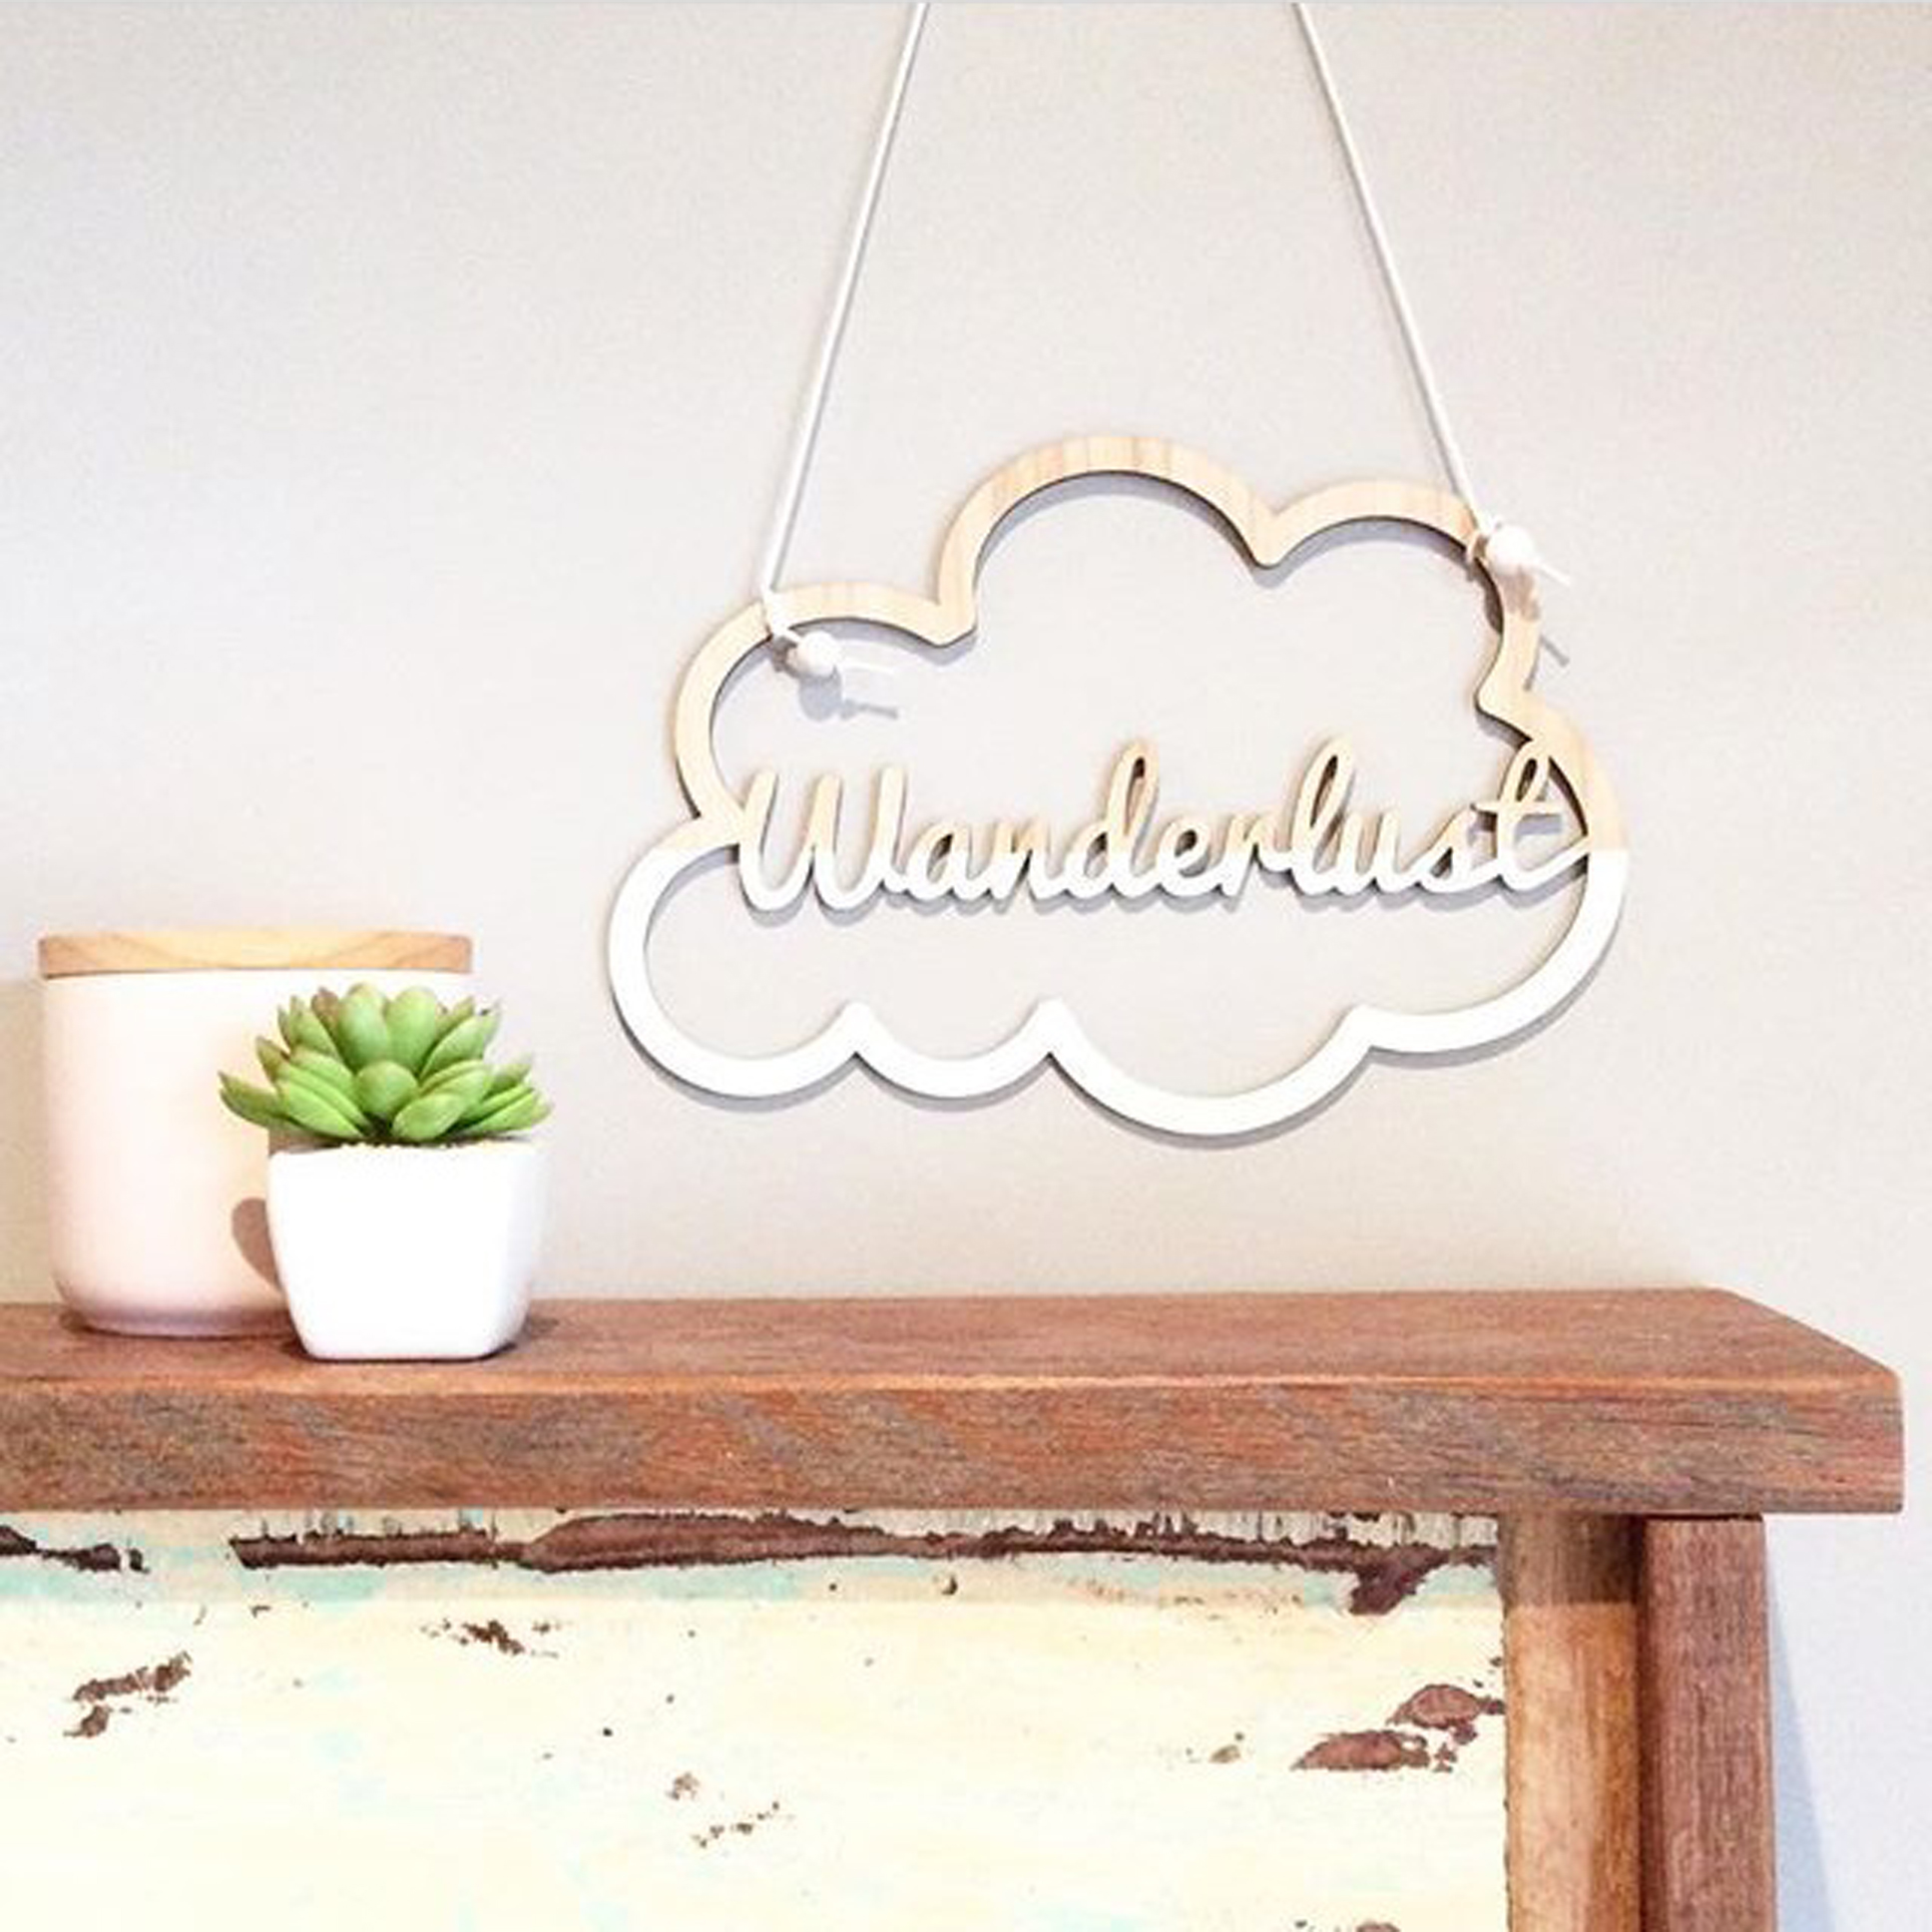 Wanderlust Cloud wallhanging, part of Carly's handmade home décor range""